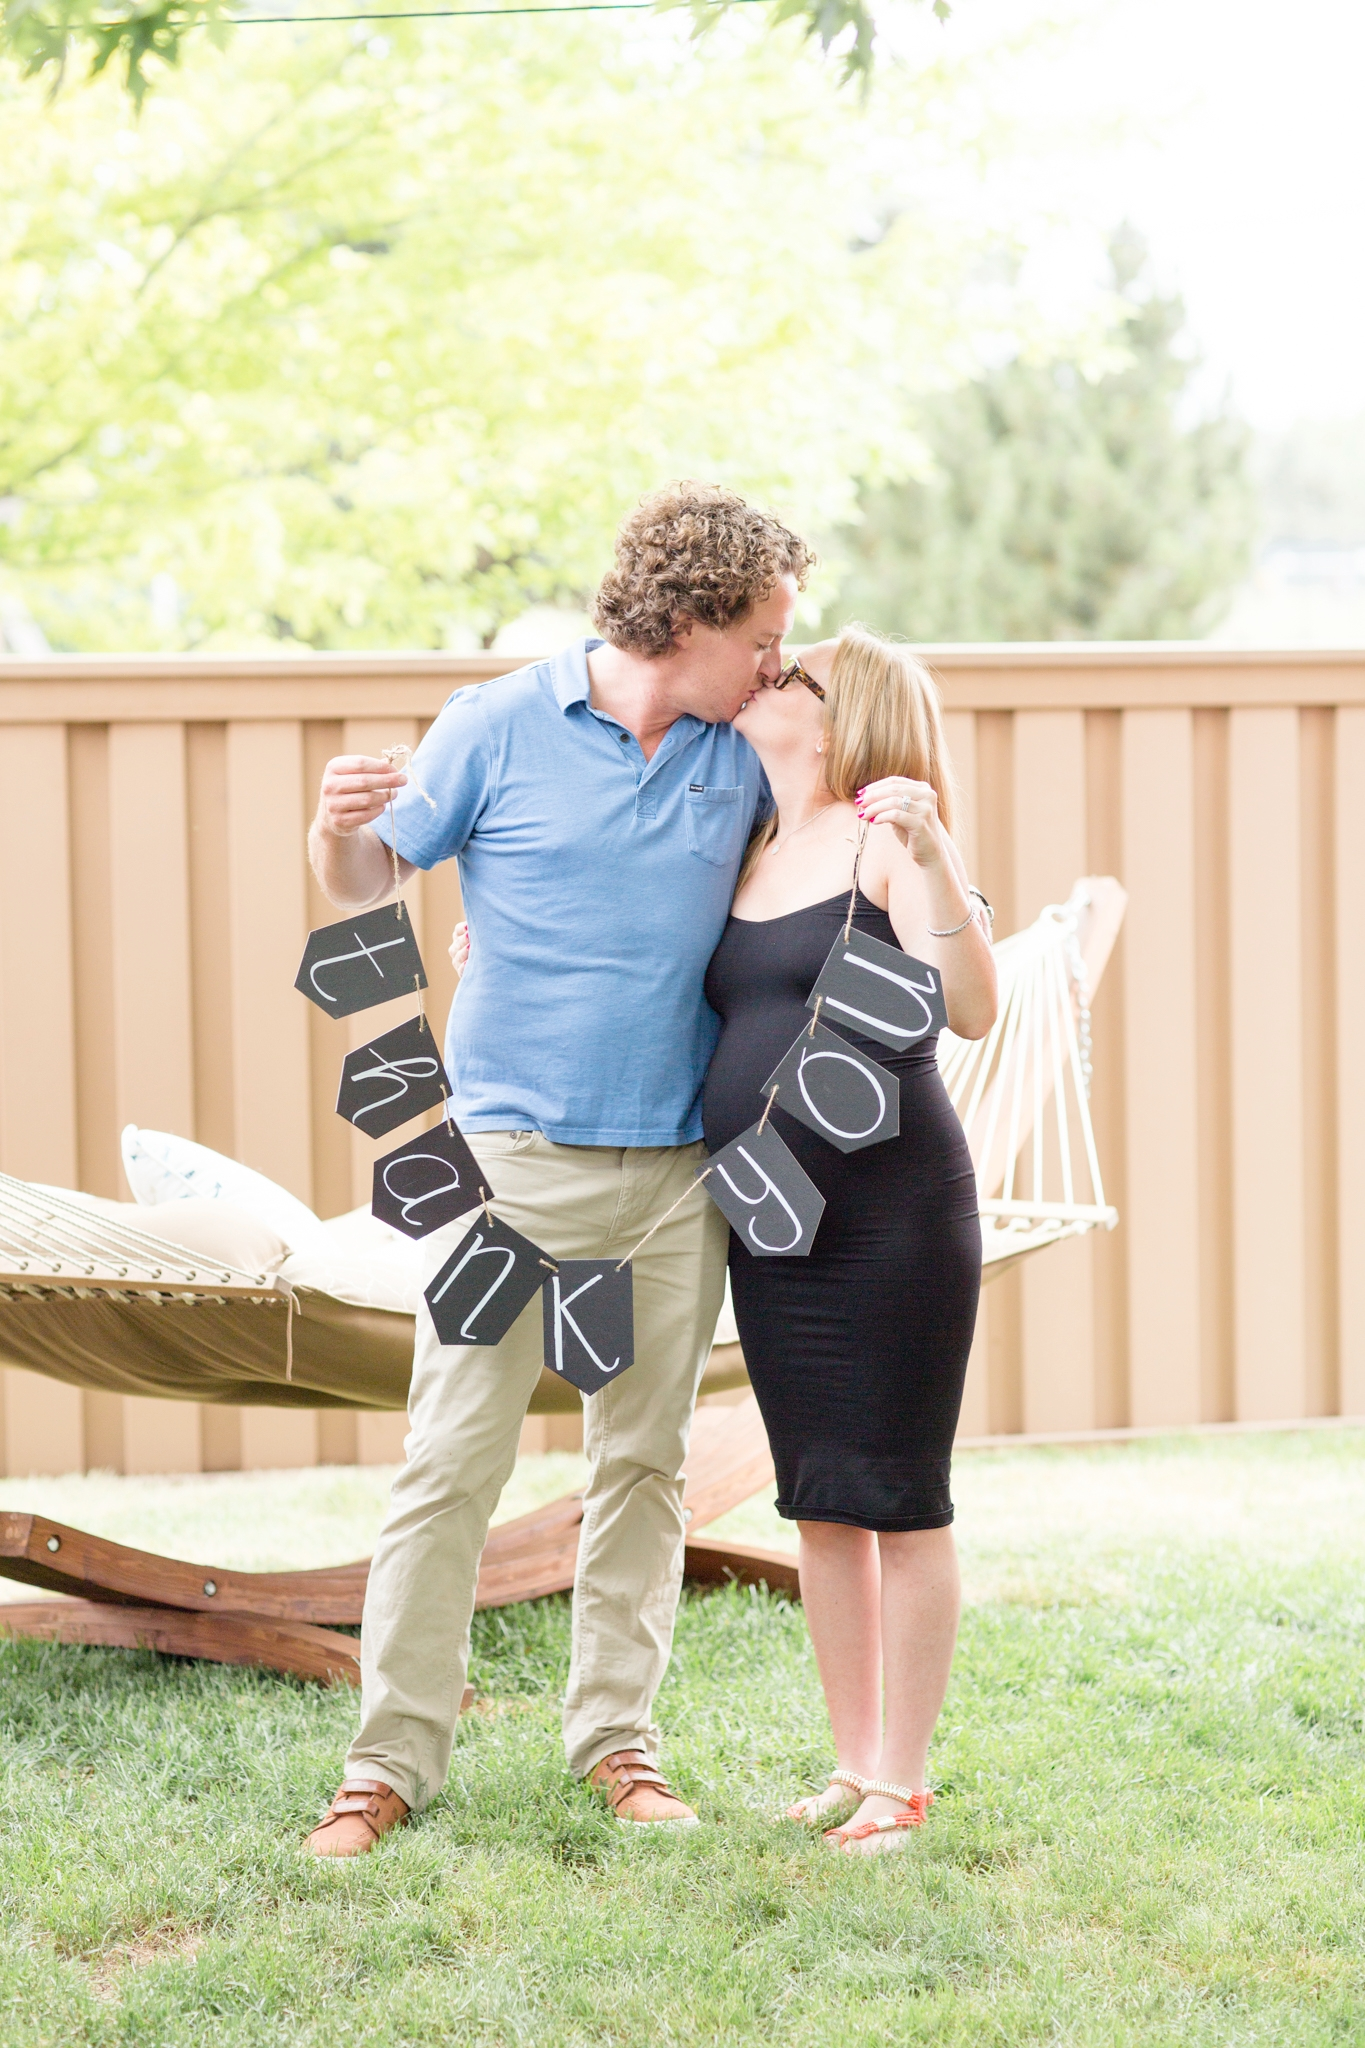 COUPLES  $450  60-90 minute photo session at location T.B.D. with one outfit change. Pricing includes session fee, 35+ thoughtfully edited high resolution digital images with full print release and personal viewing collection.